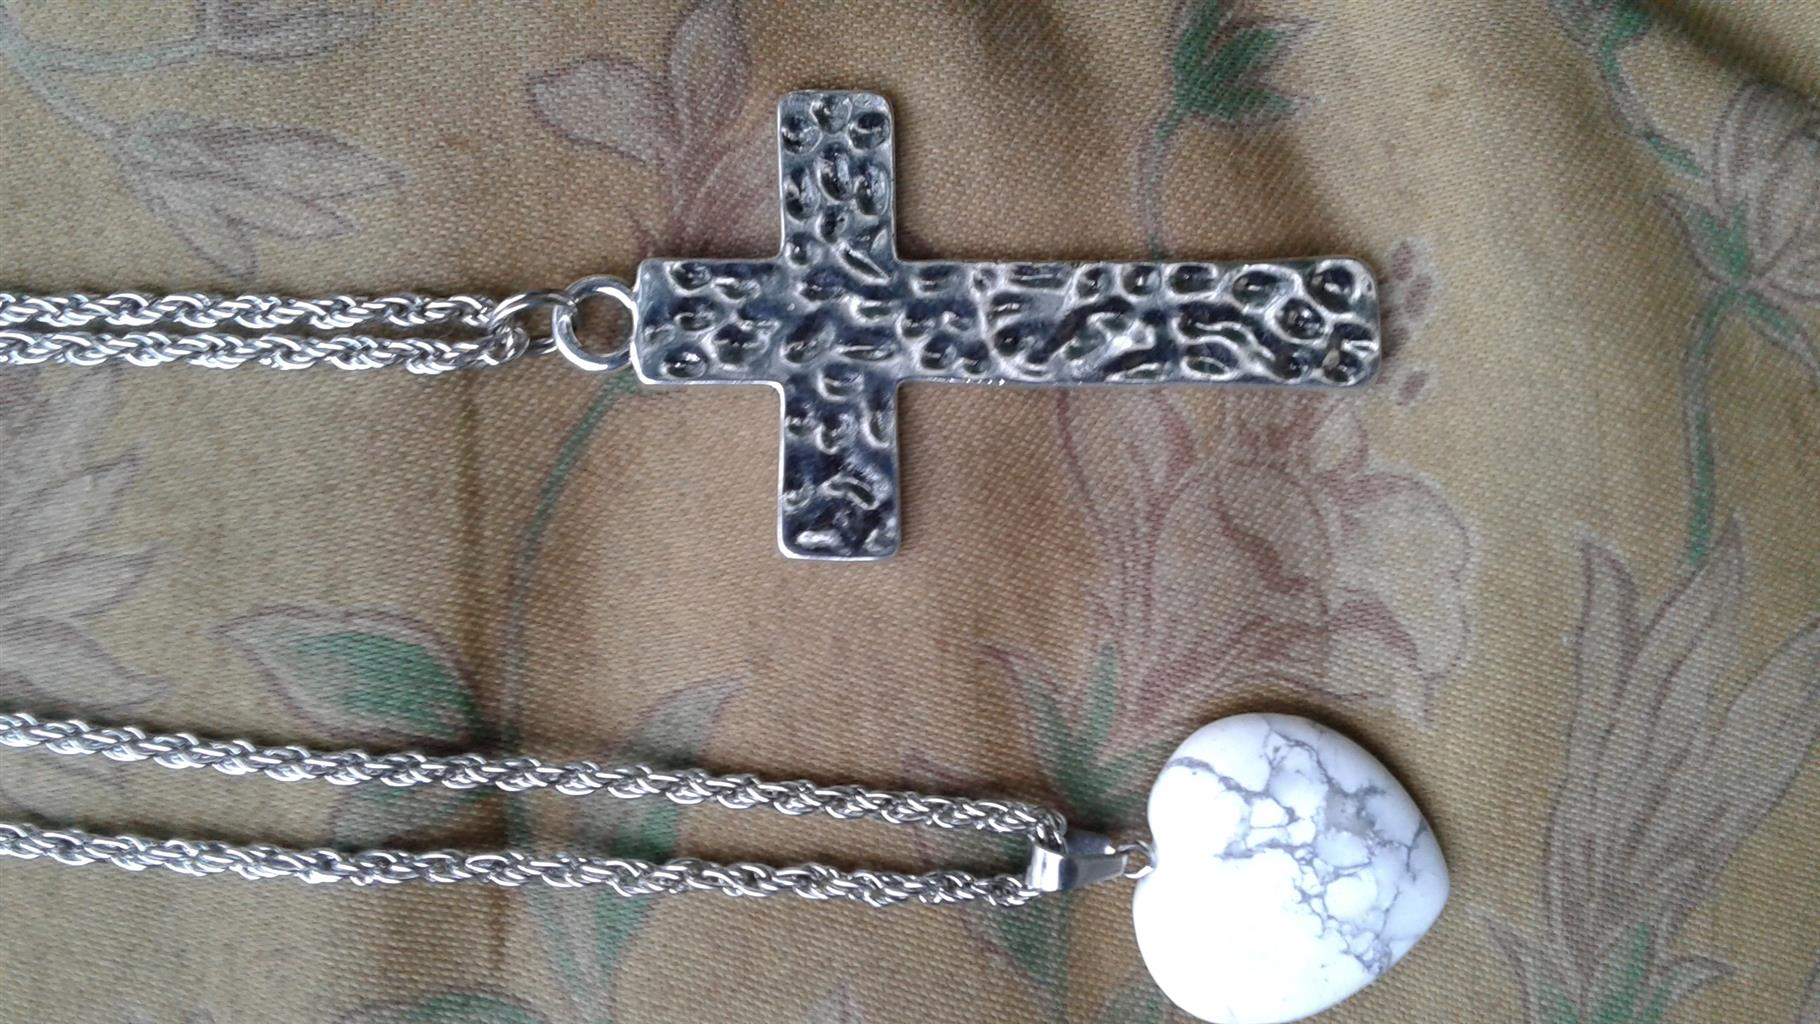 Stainless steel necklaces and bracelets